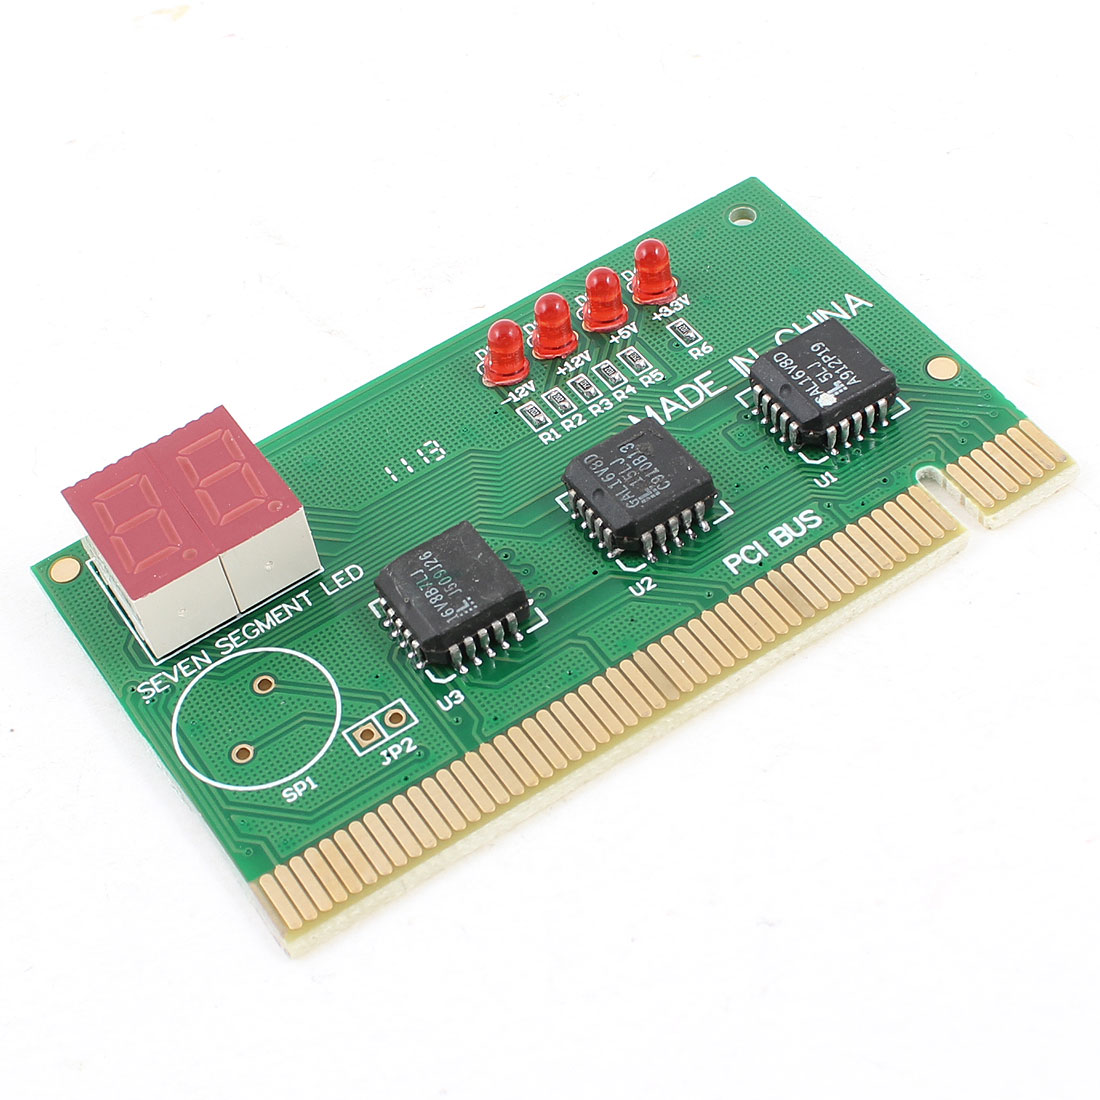 PC Computer PCI 2 Digits Motherboard Post Analyzer Diagnostic Card Tester